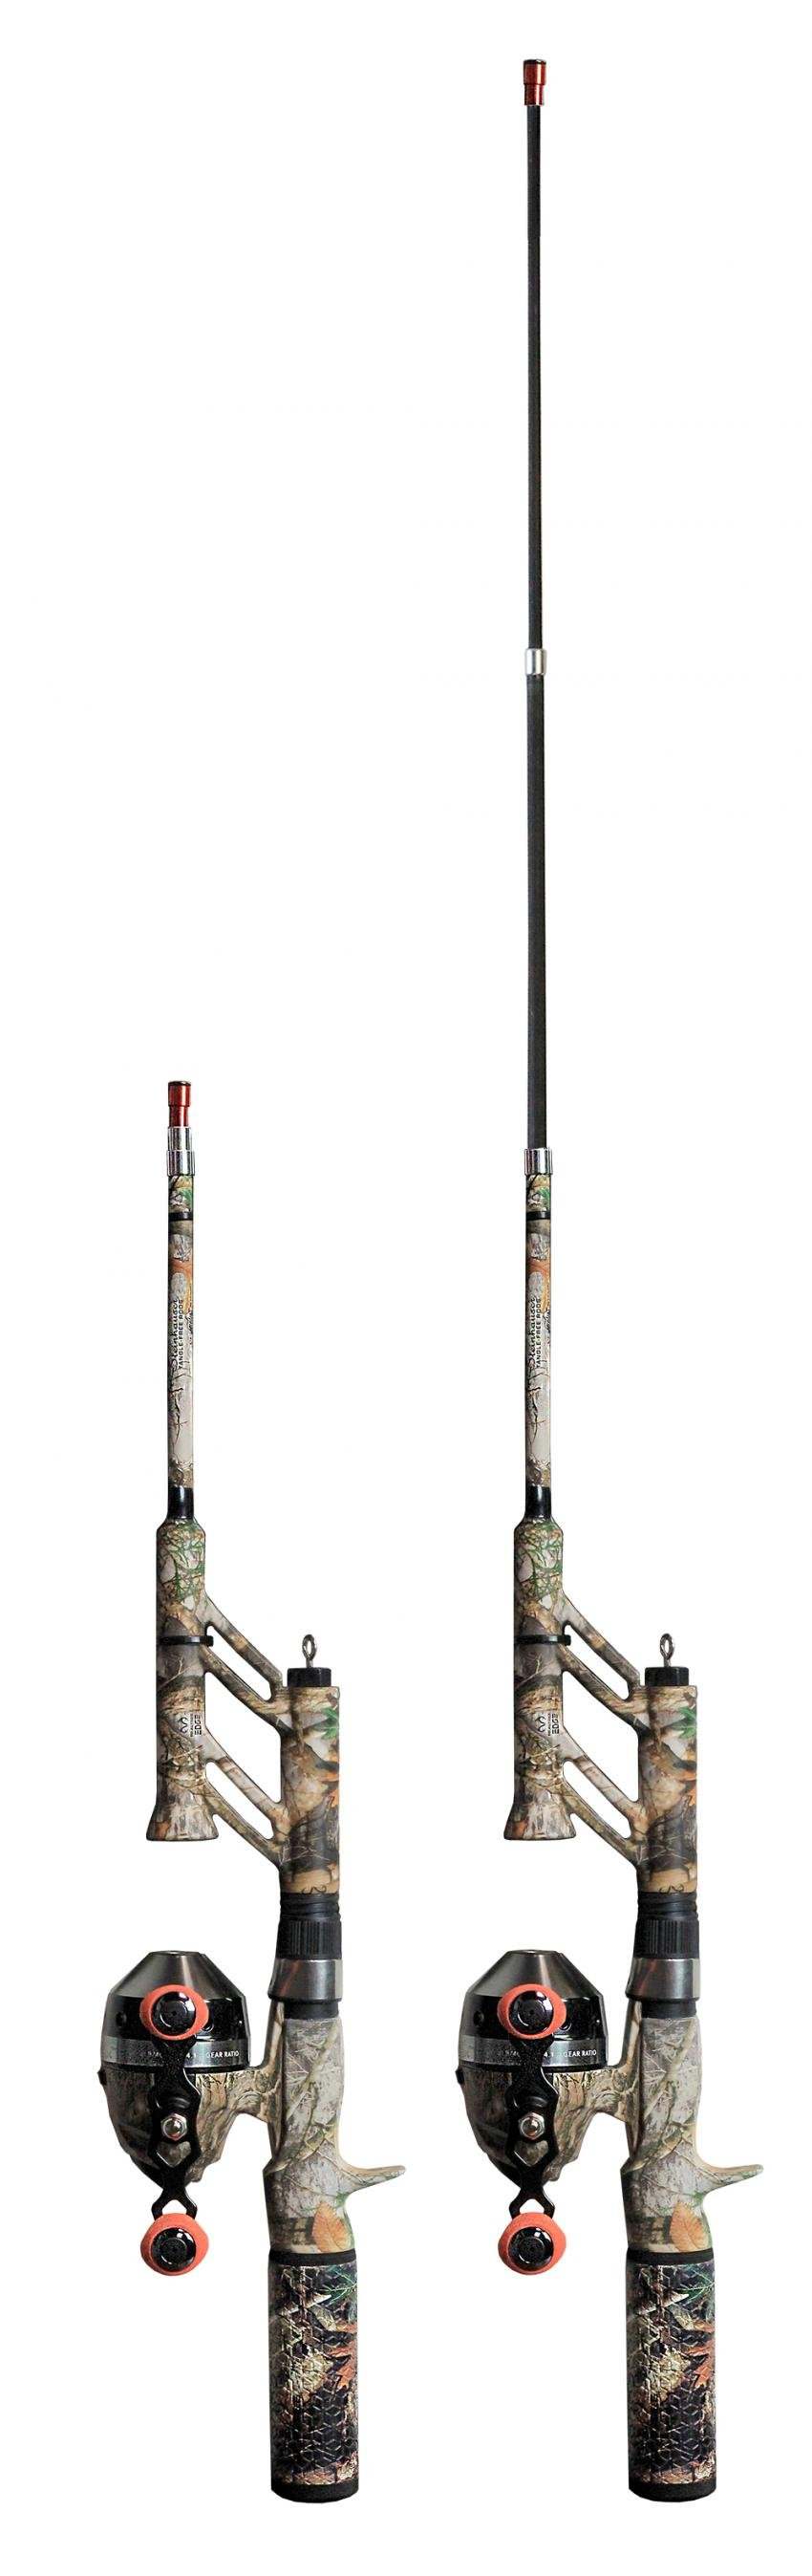 ProFISHiency 6-foot 8-inch Spinning Combo in Realtree EDGE